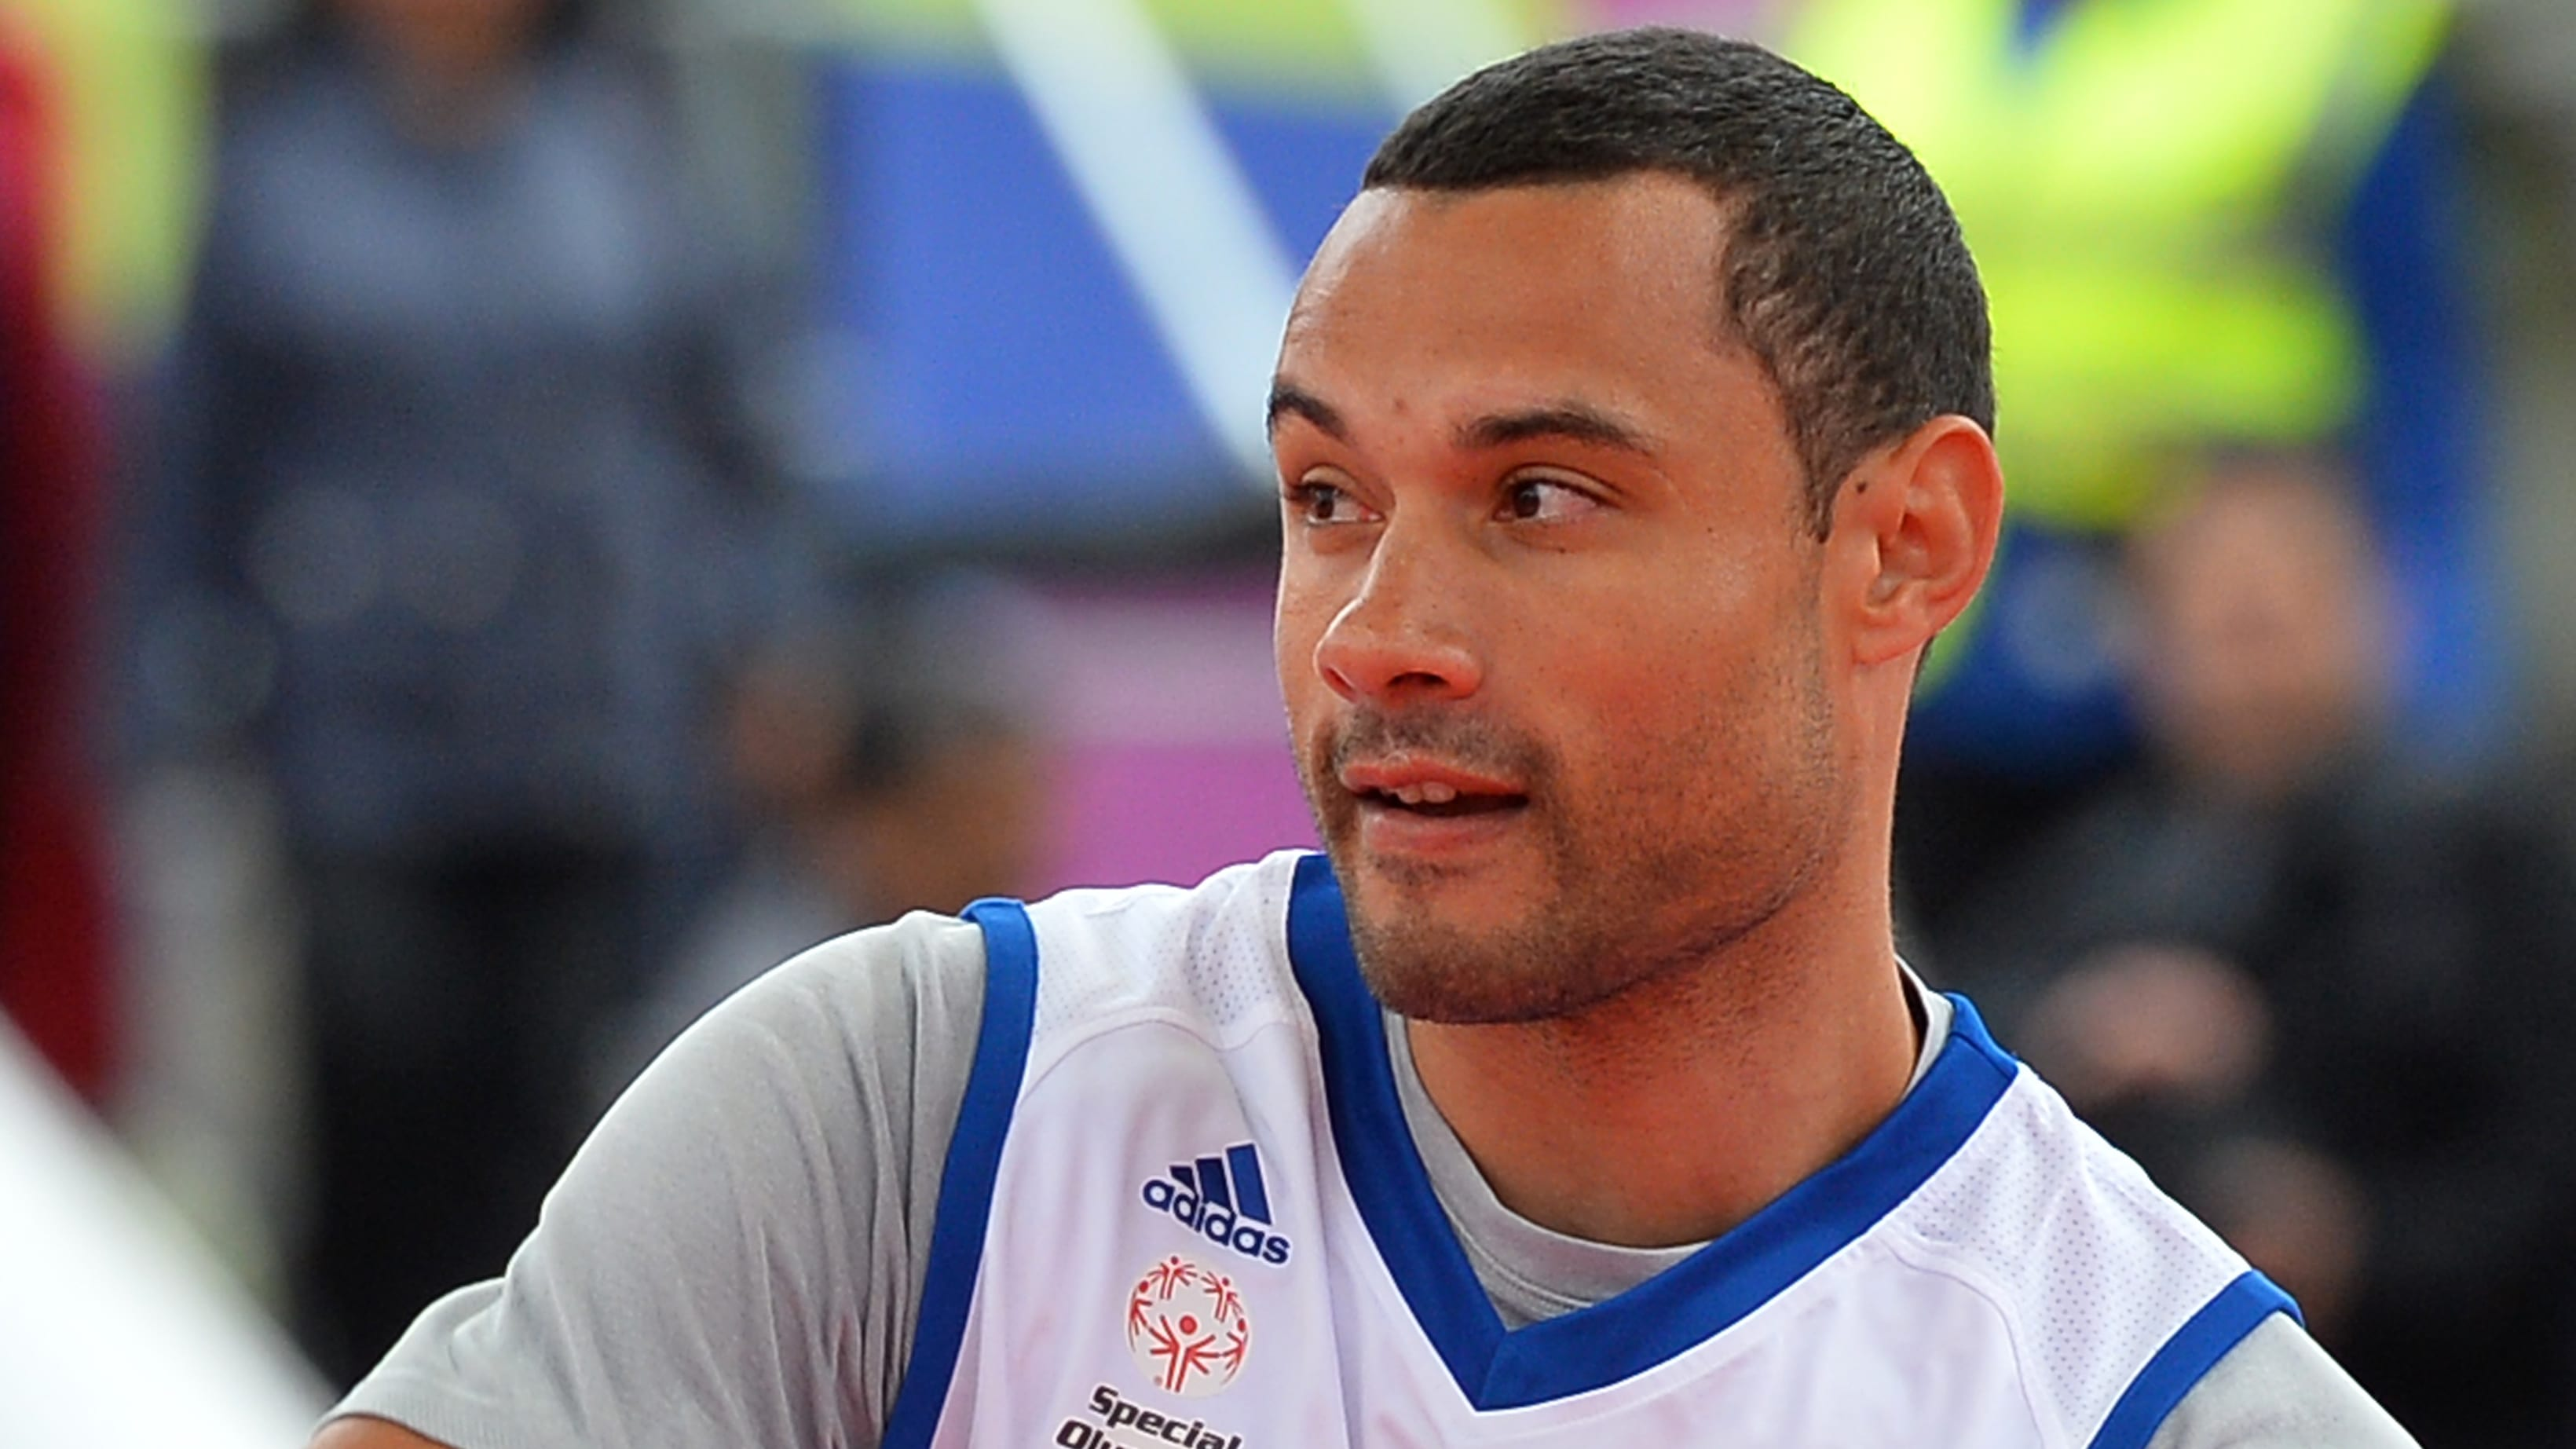 Retired US professional basketball player Trajan Langdon plays basketball during a goodwill game organised by Euroleagues sport and social development programme One Team as part of the Euroleague 2013 Final Four basketball weekend festivities in Trafalgar Square, central London, on May 10, 2013. AFP PHOTO / BEN STANSALL        (Photo credit should read BEN STANSALL/AFP/Getty Images)